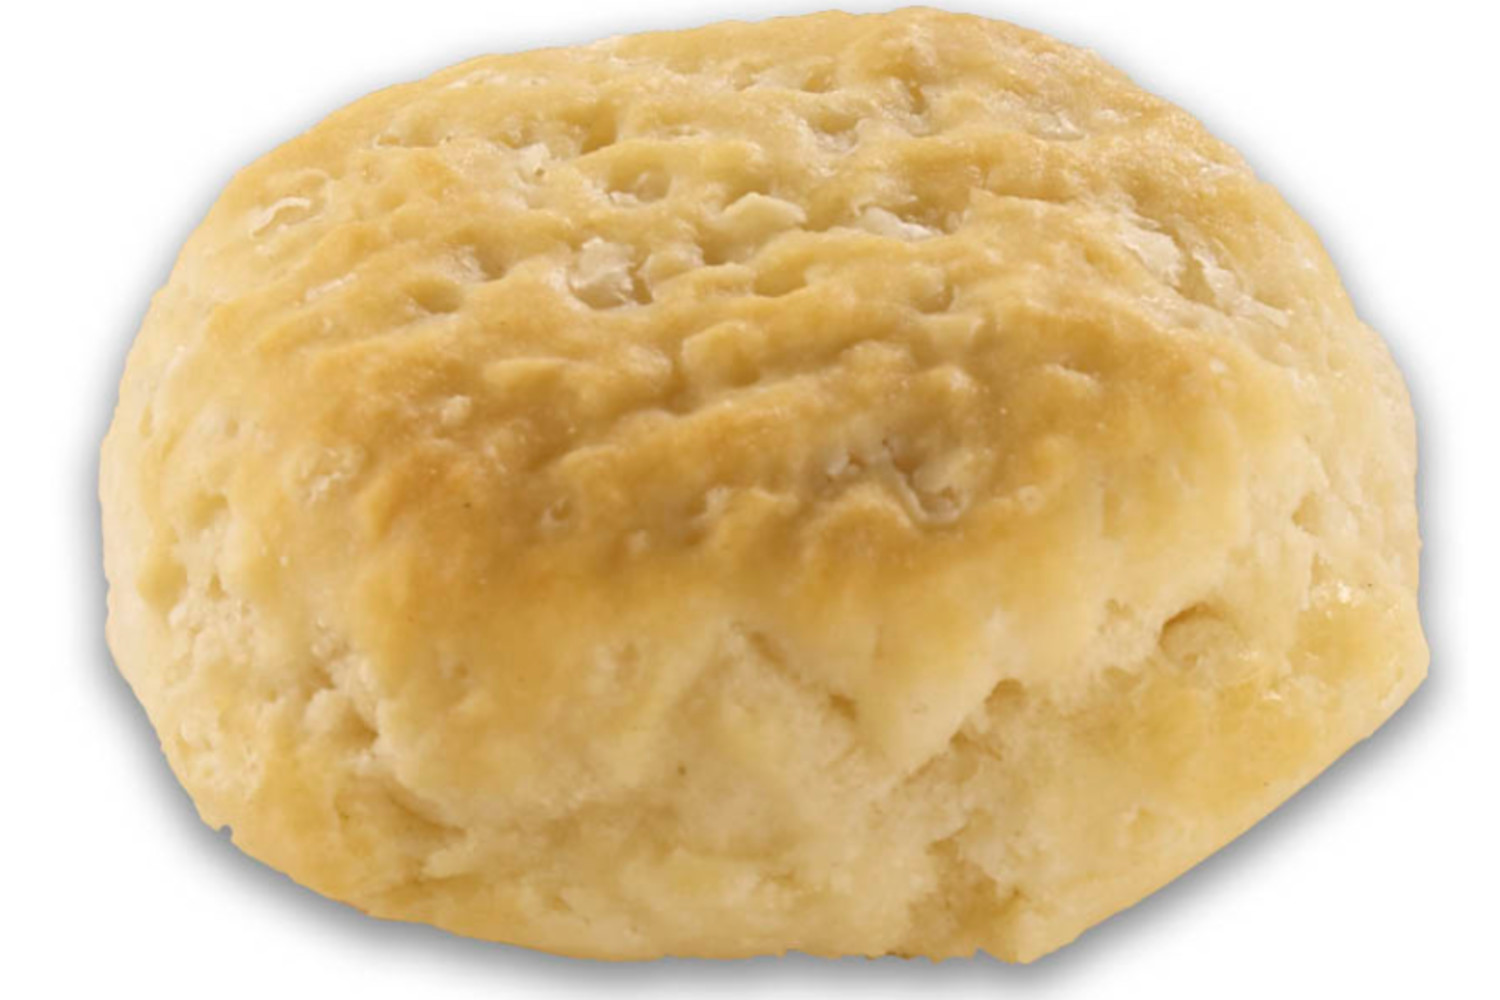 BAKERY CHEF Premium Buttermilk Biscuits